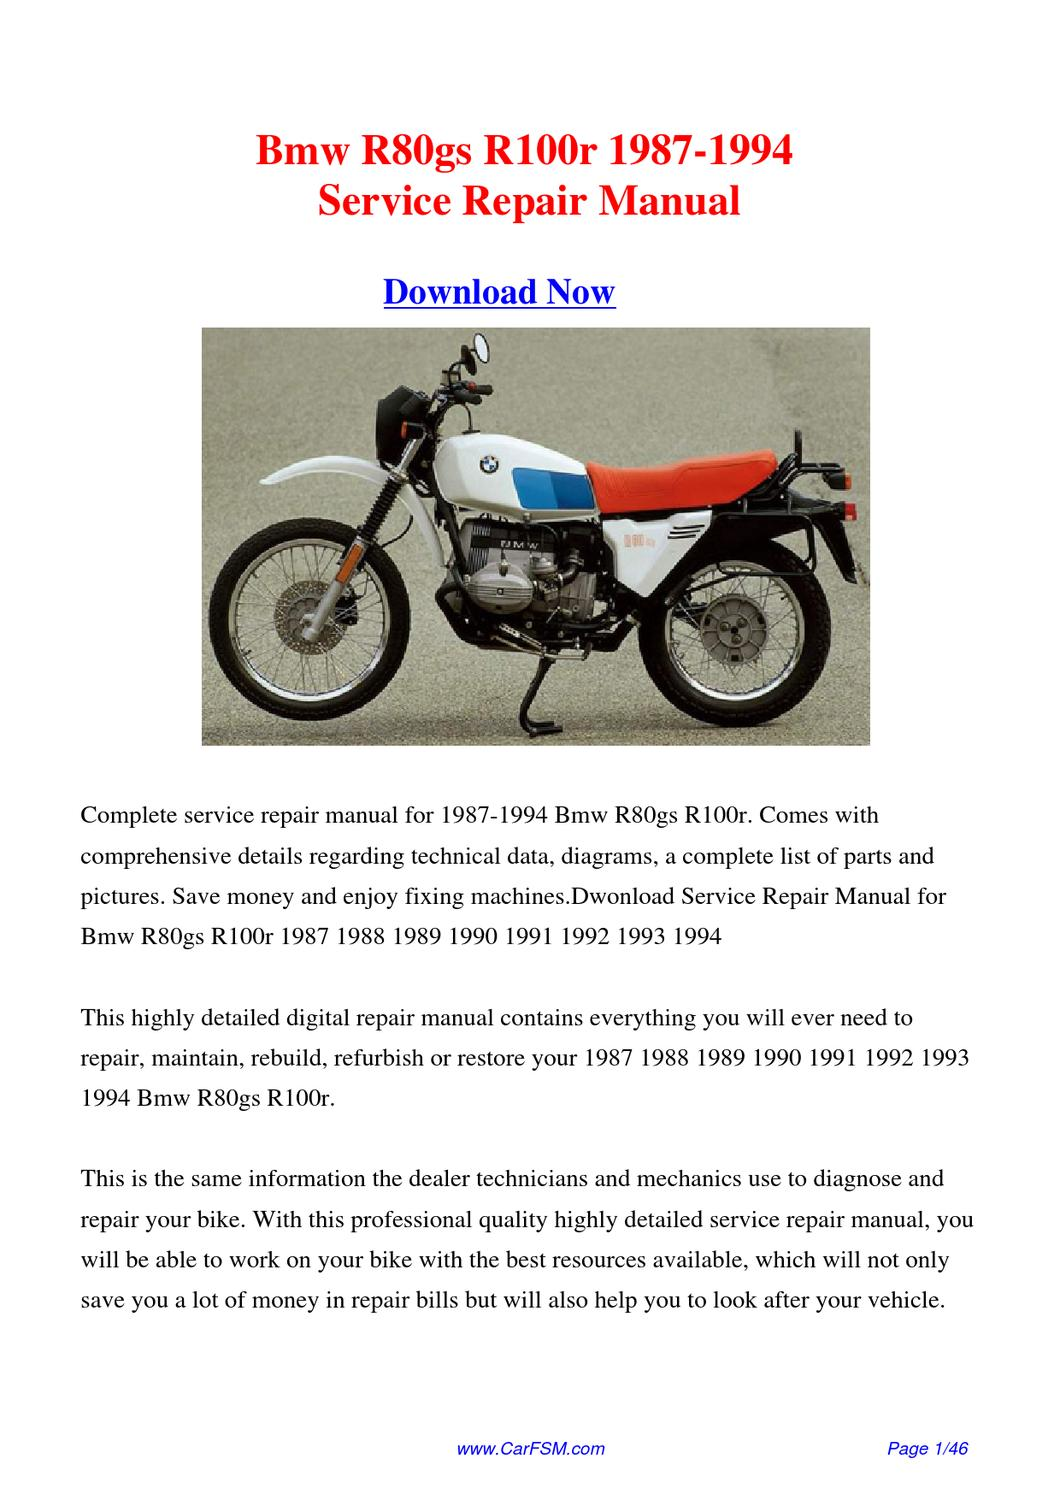 bmw r80gs r100r 1987 1994 factory repair manual by gong. Black Bedroom Furniture Sets. Home Design Ideas